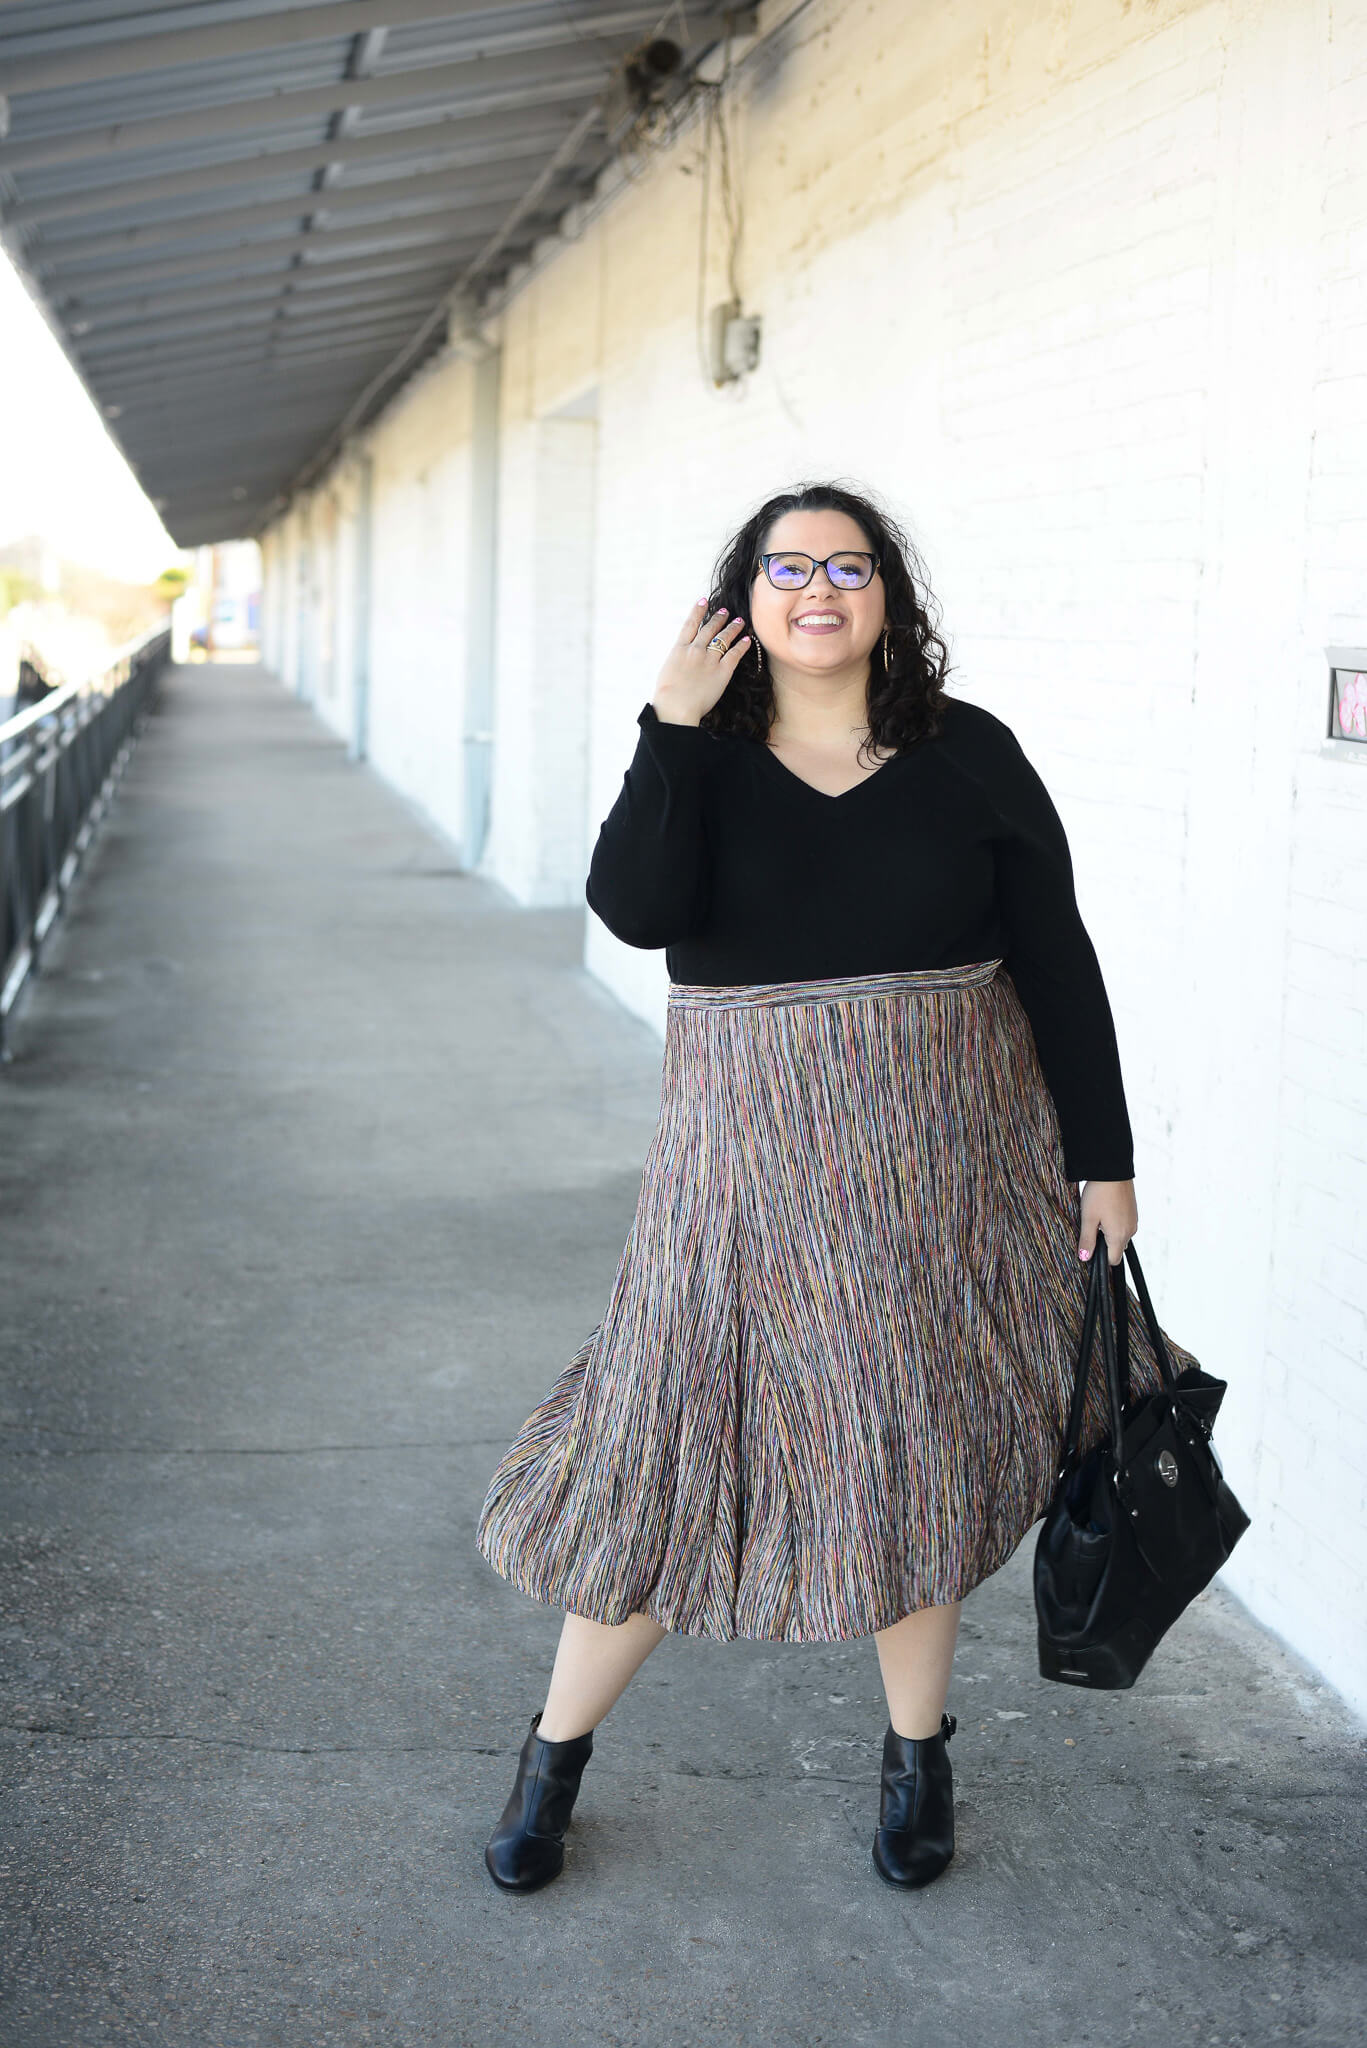 How to wear a plus size skirt